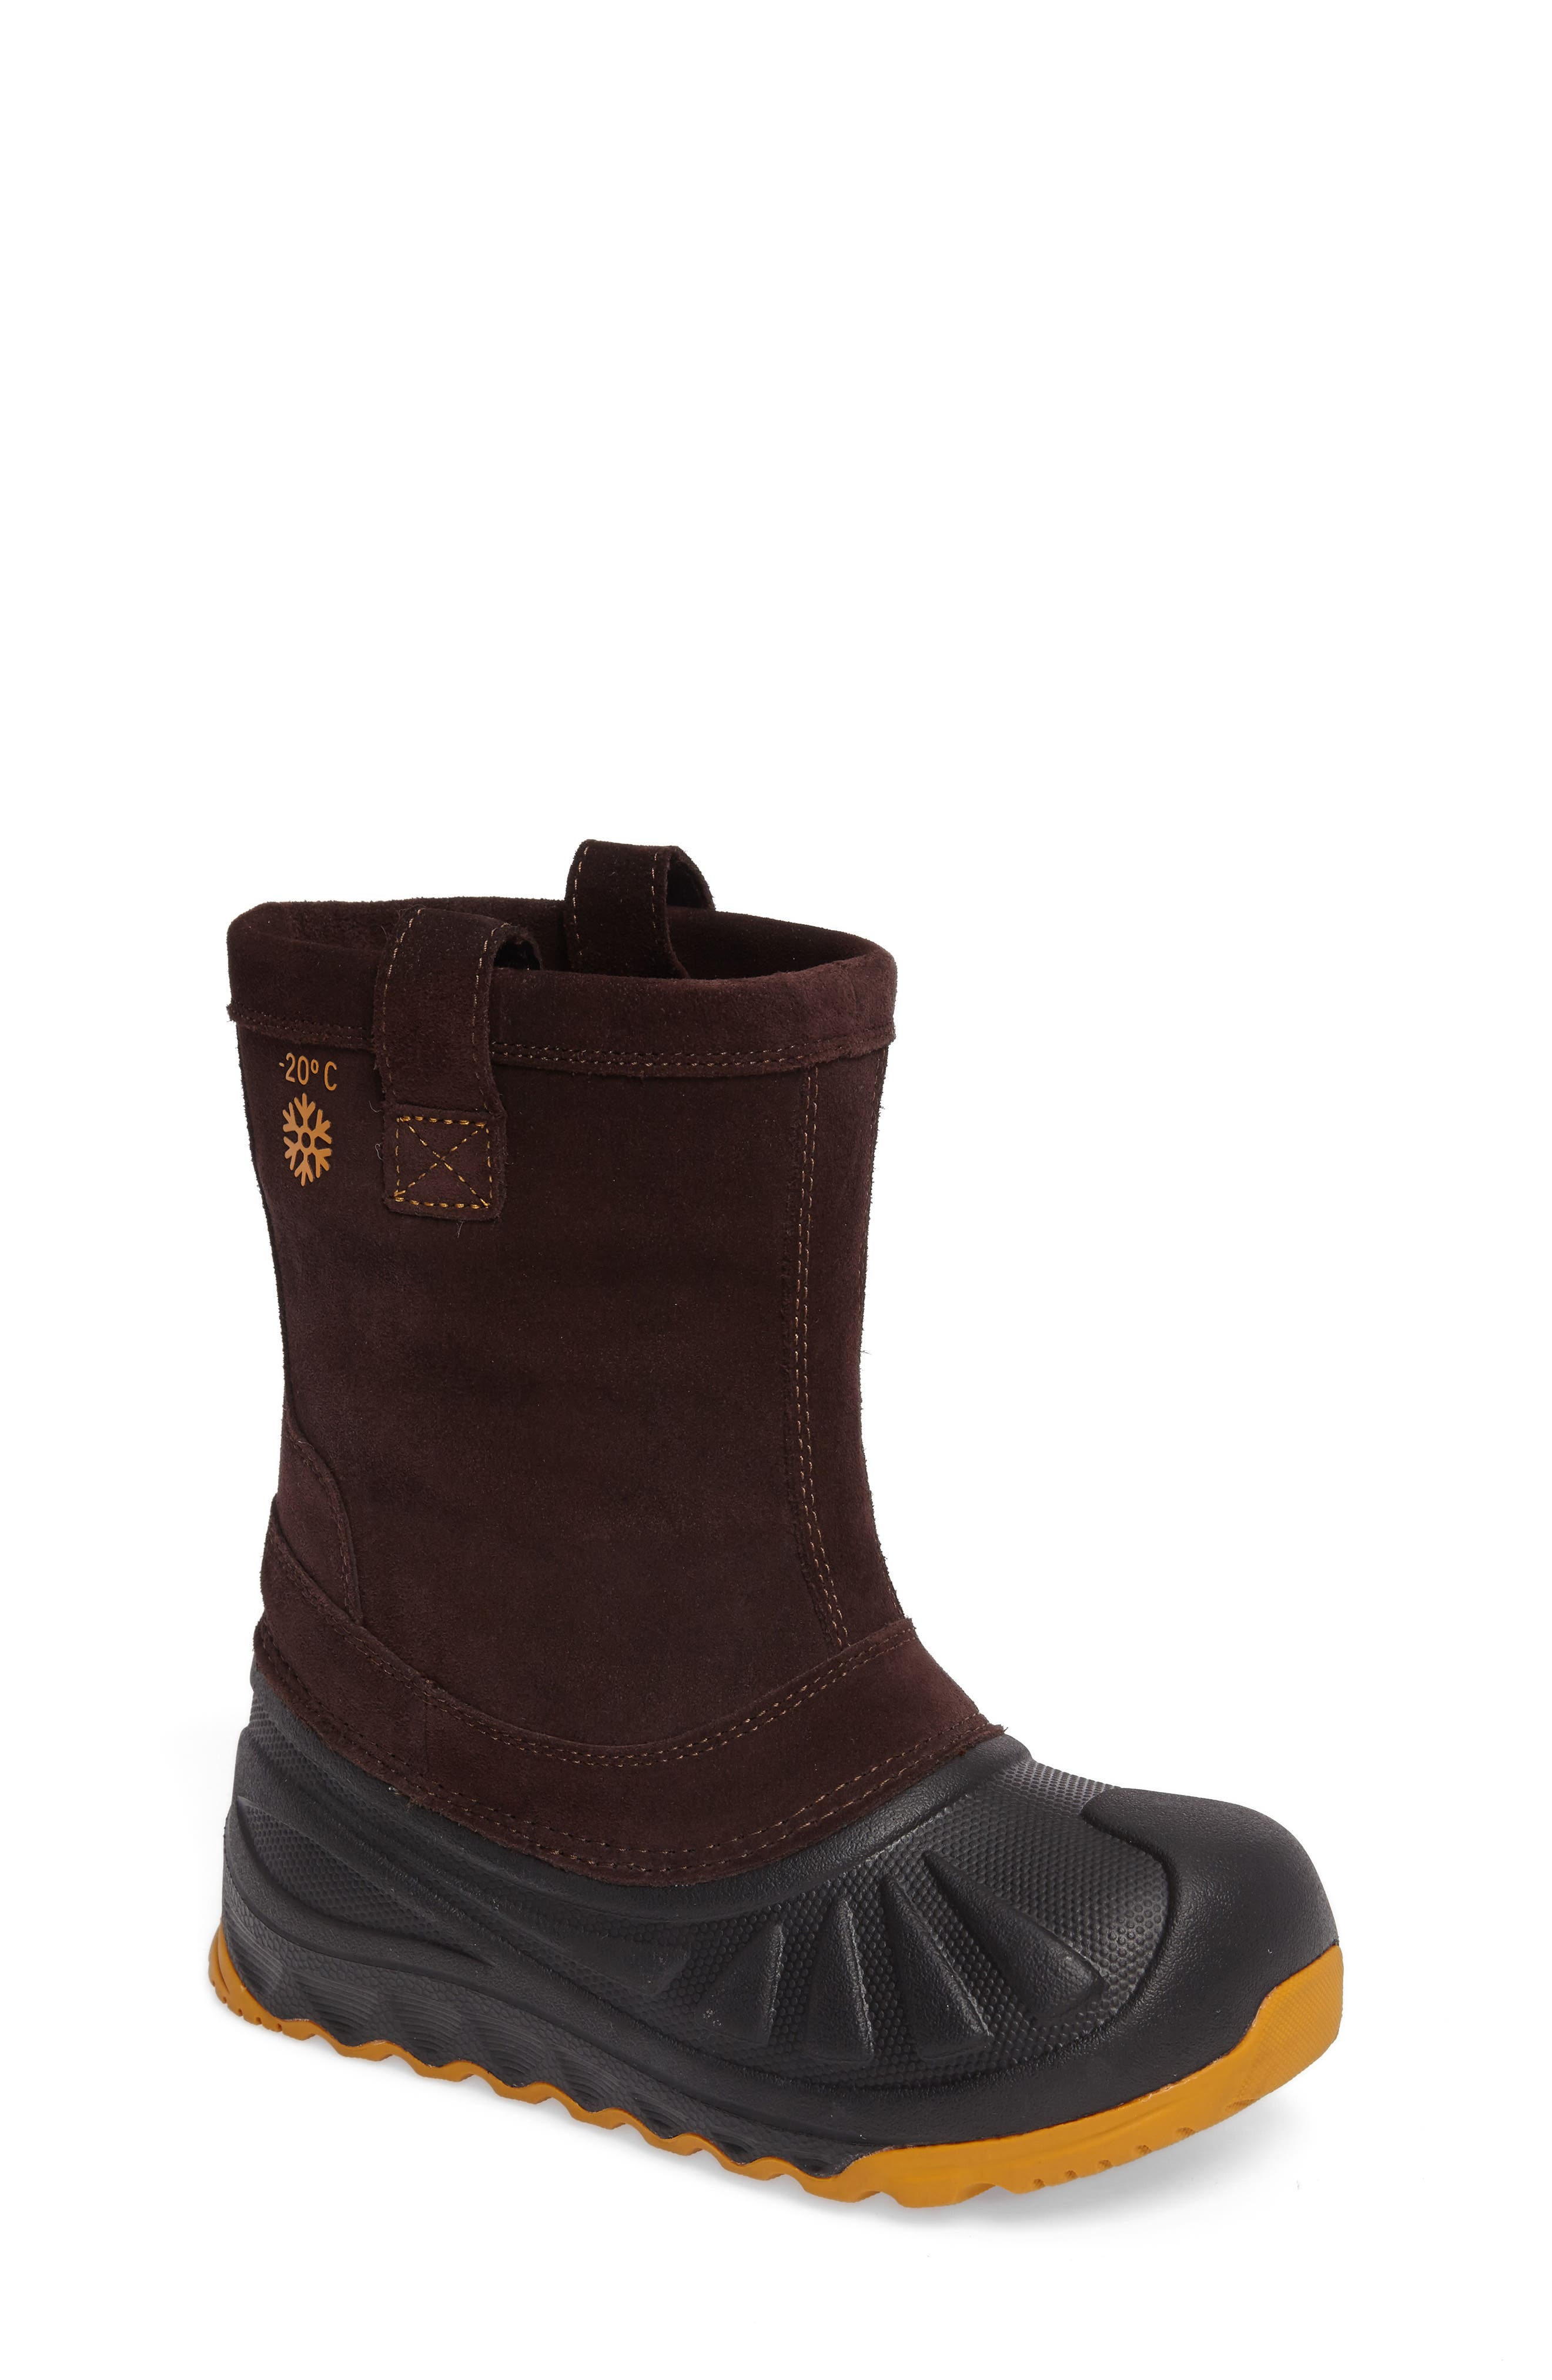 Evertt Waterproof Thinsulate<sup>™</sup> Insulated Snow Boot,                         Main,                         color,